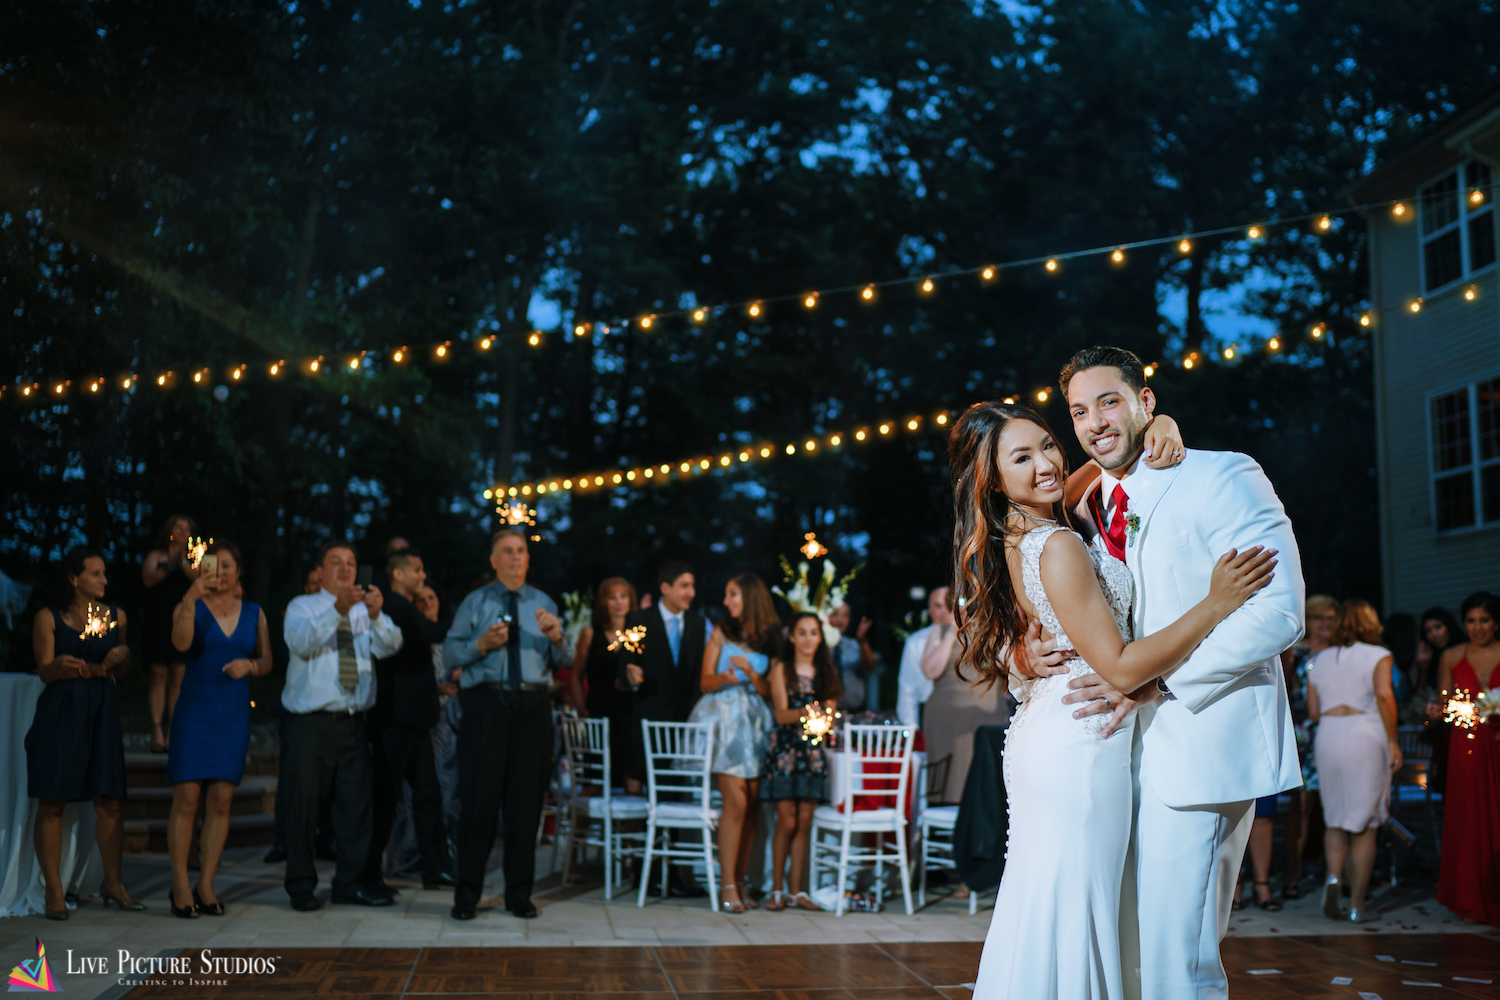 3 Tips from NJ & NYC Wedding Photographers for Planning a Backyard Celebration